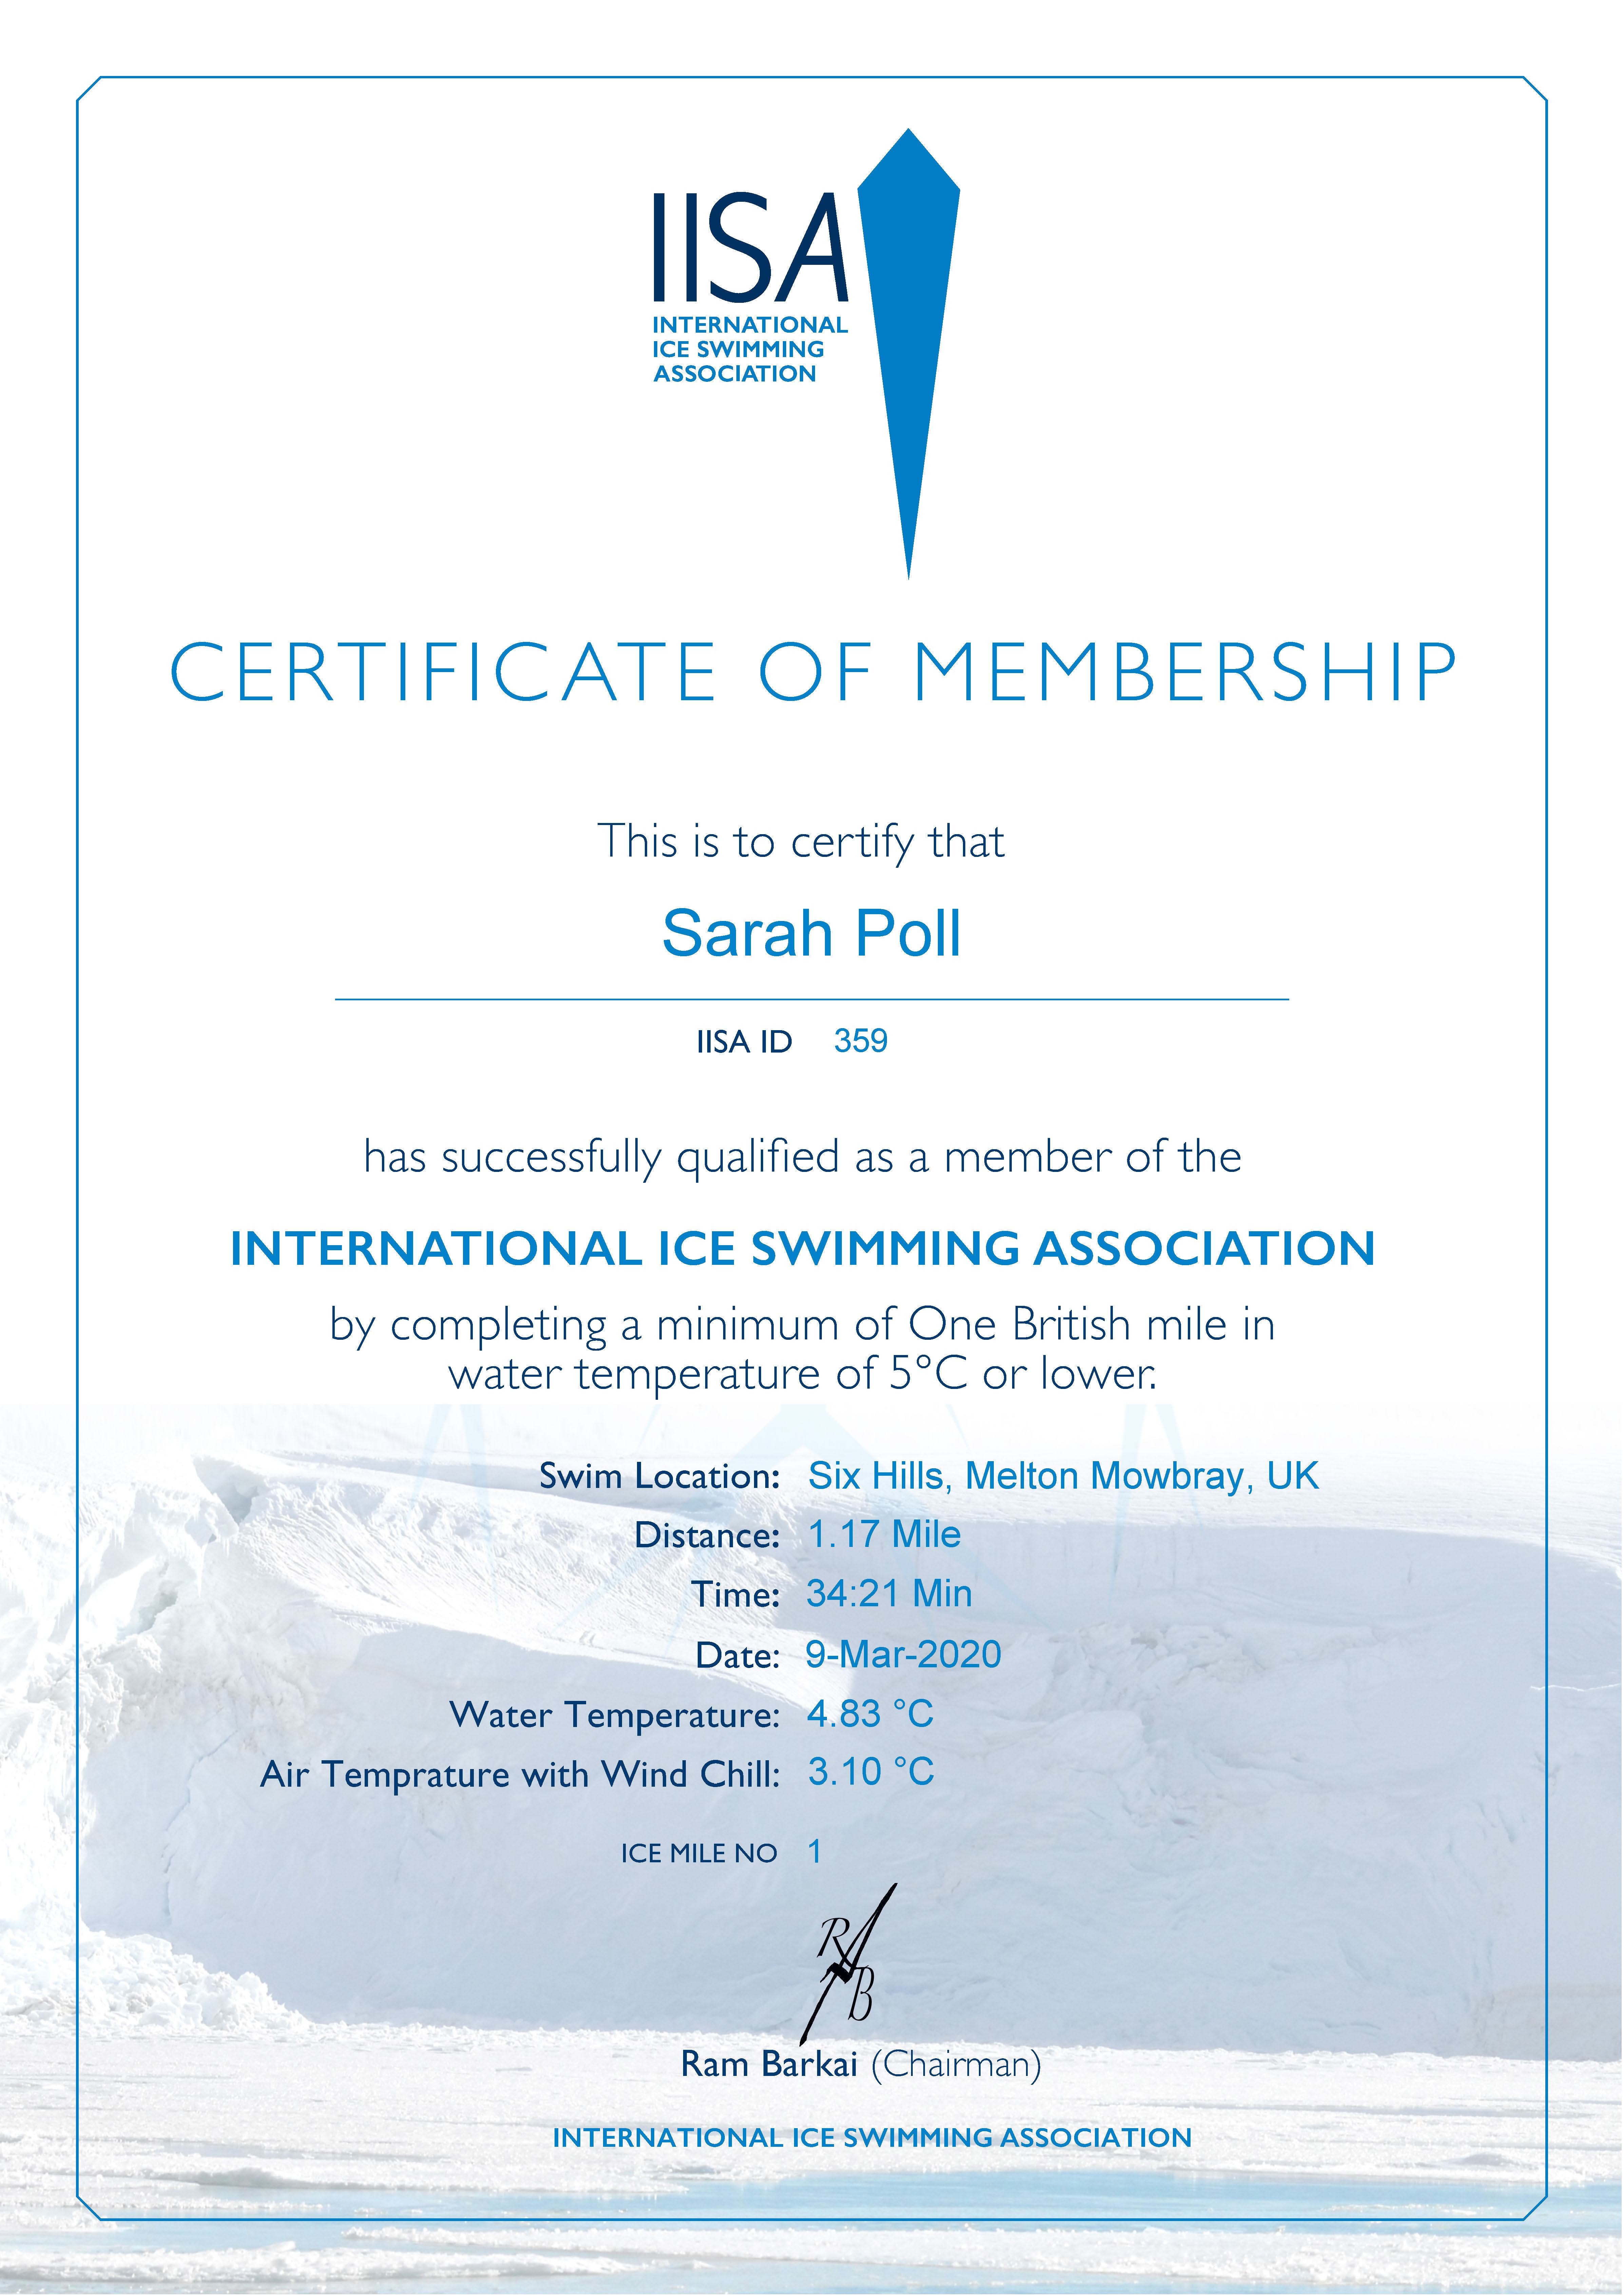 Ice Mile Certificate - Sarah Poll